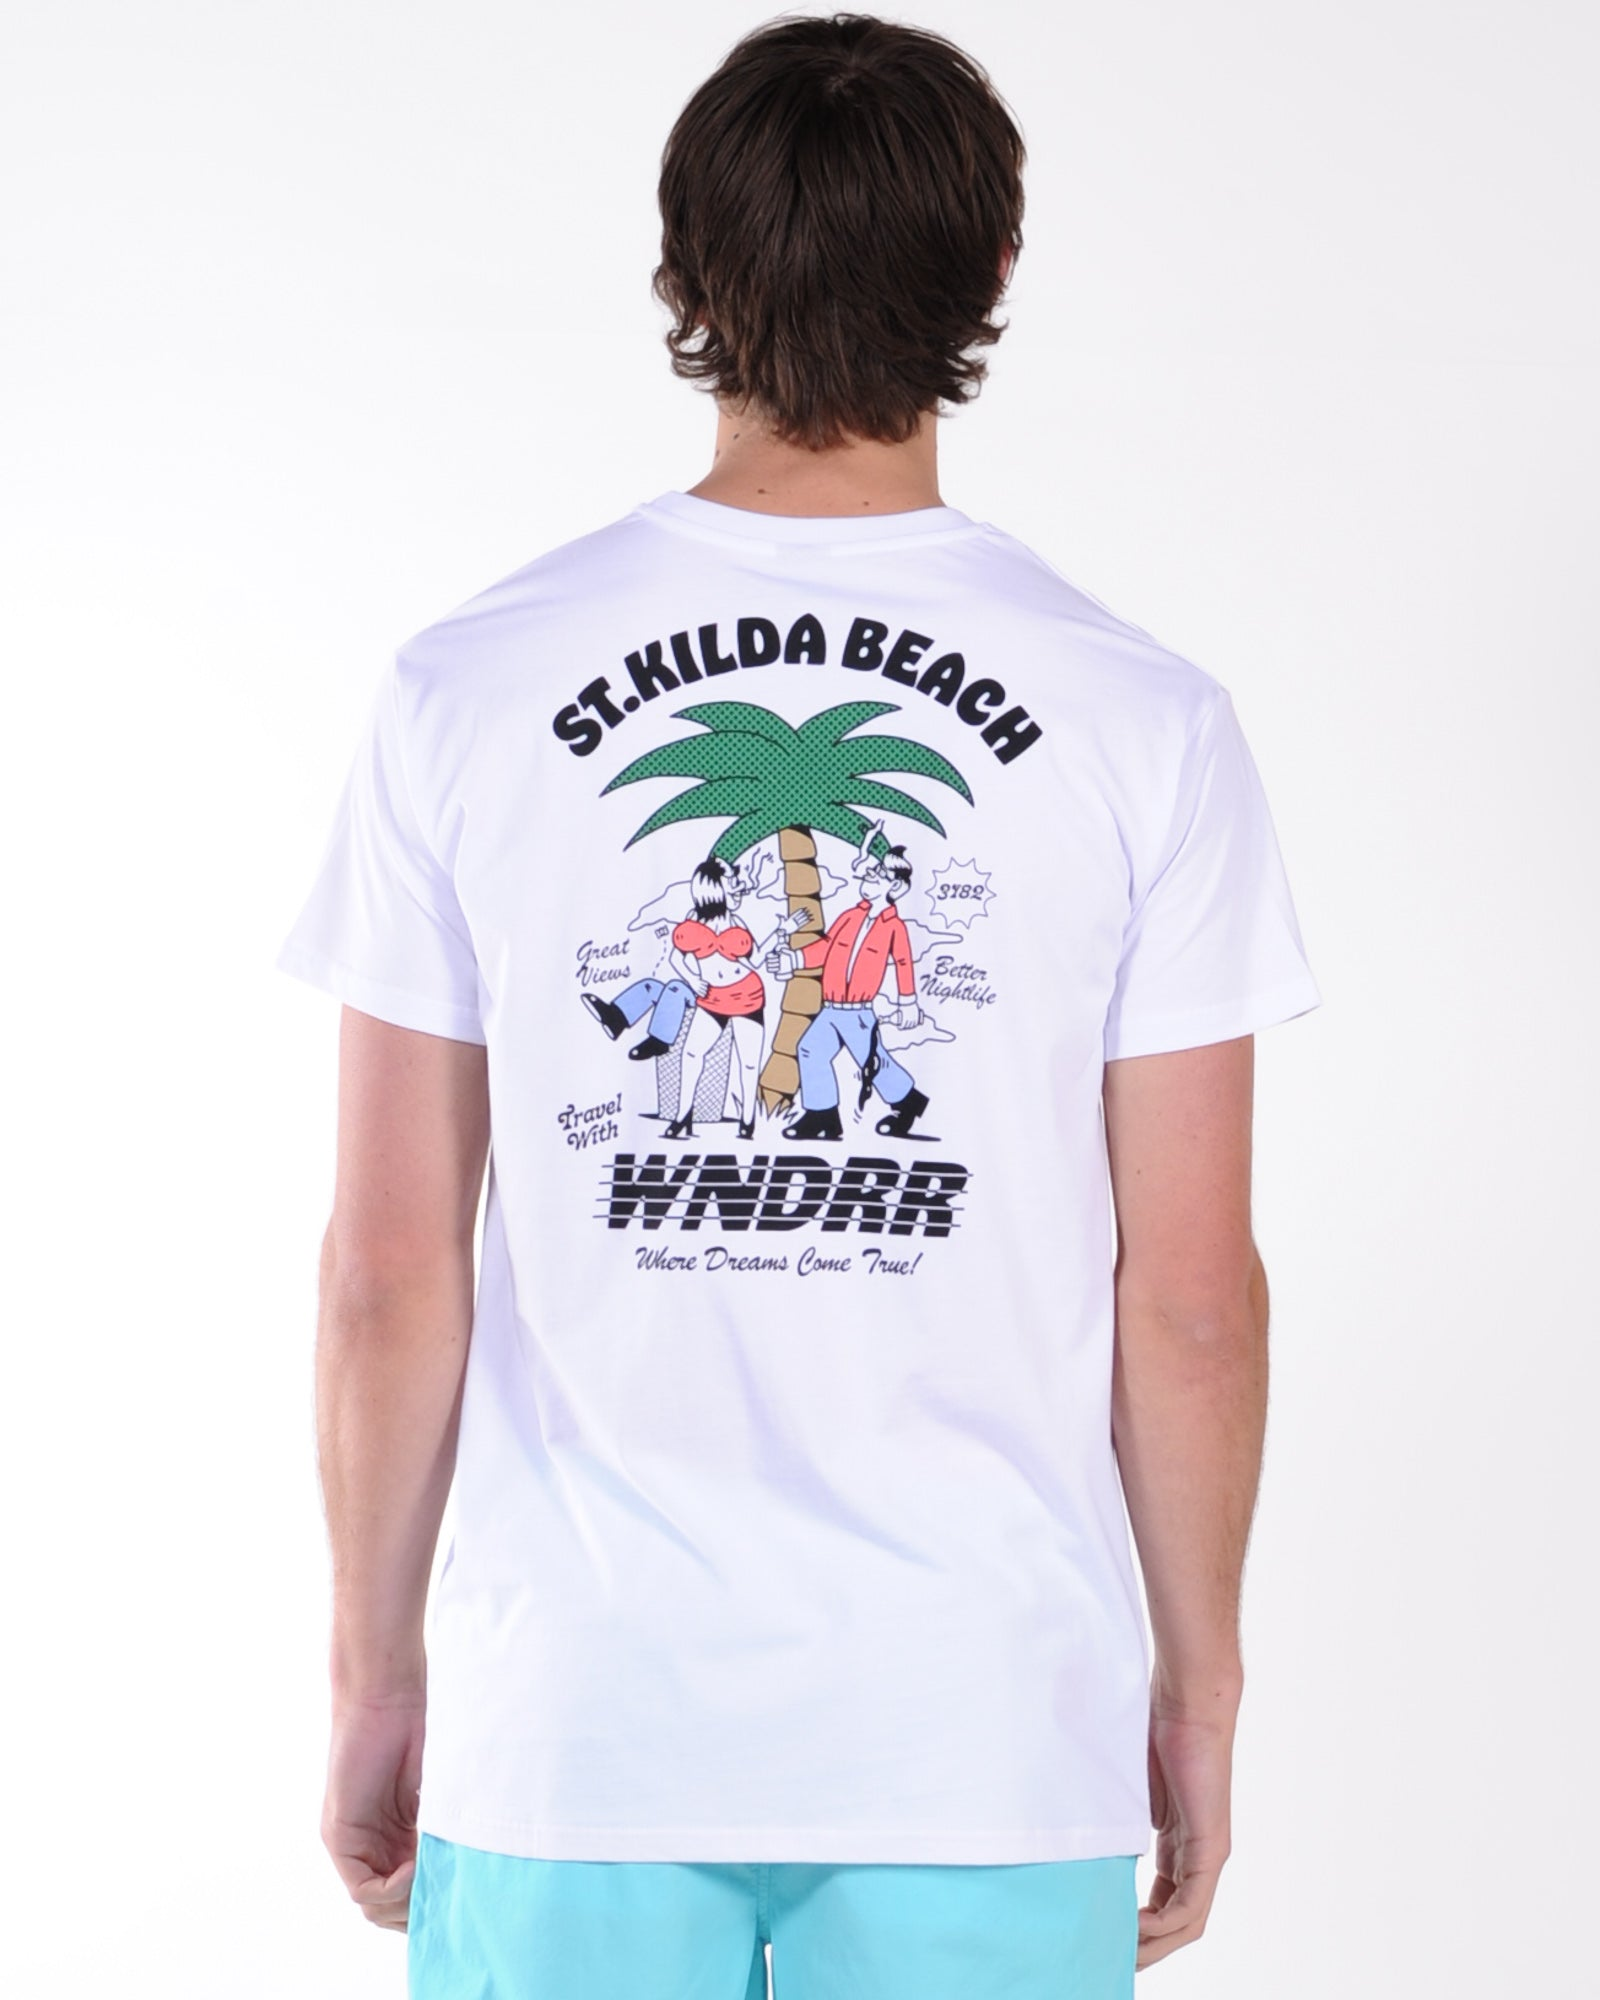 Wndrr St. Kilda Beach Custom Fit Tee - White